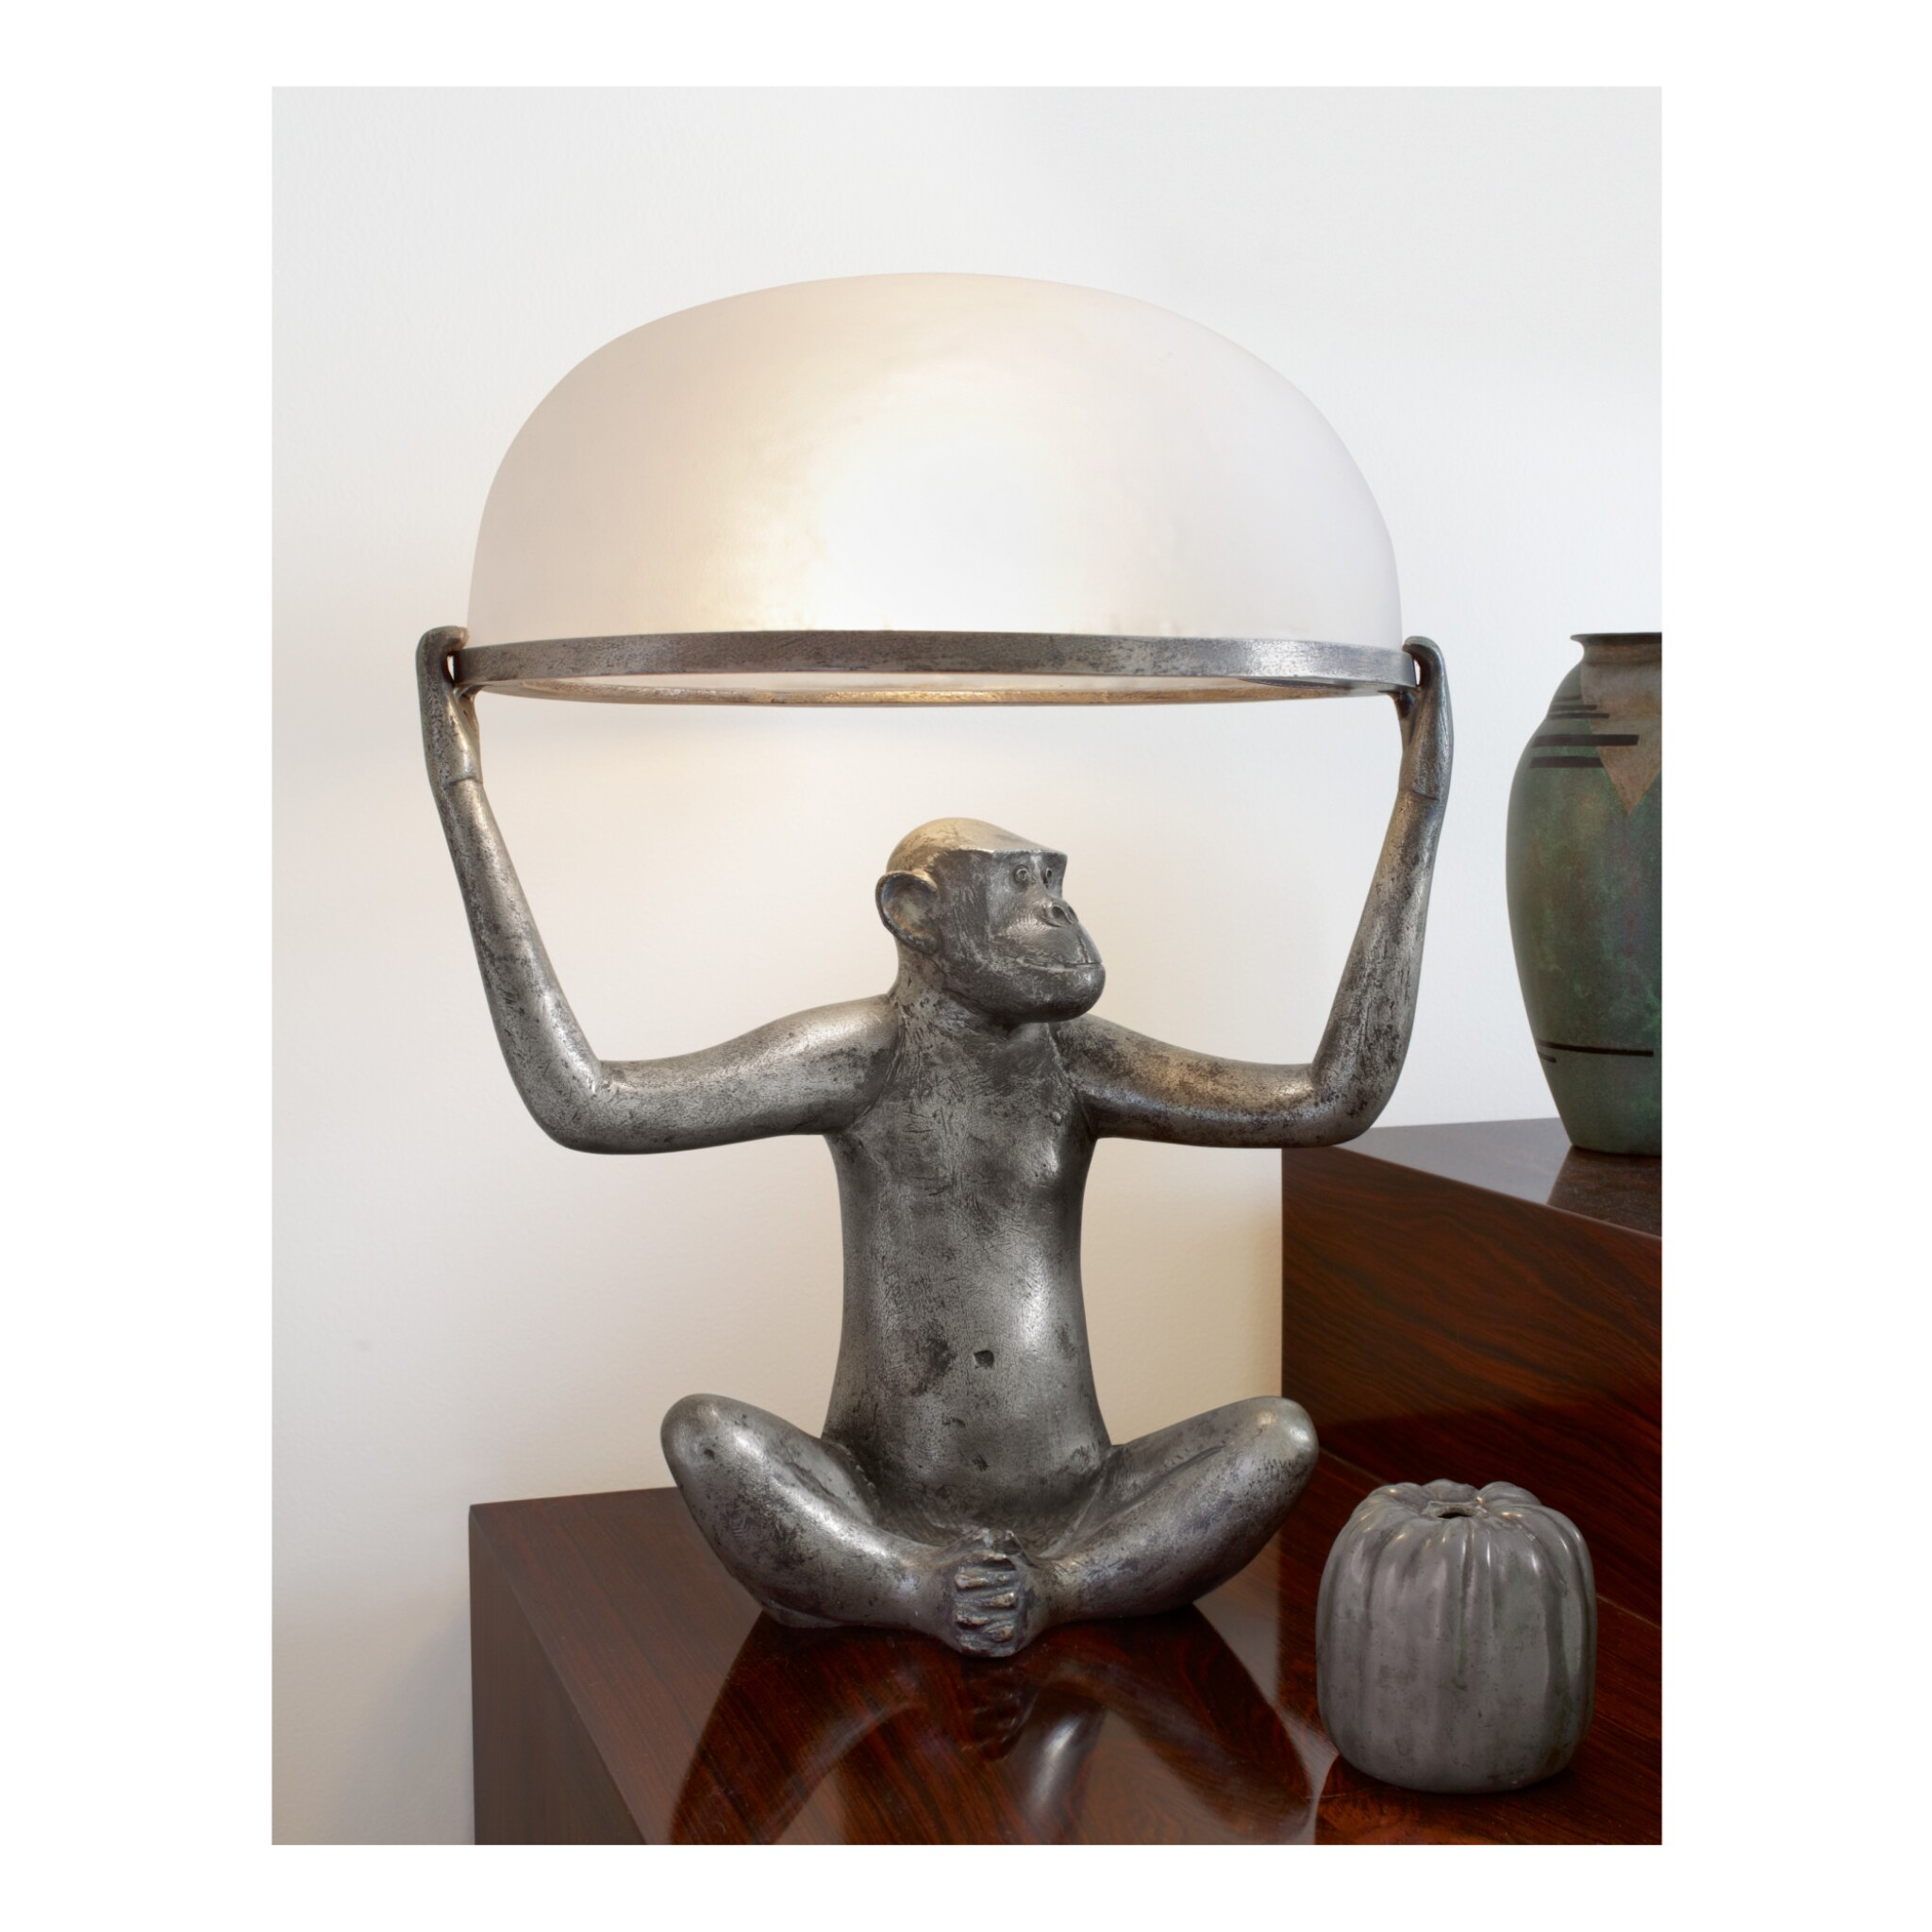 """View full screen - View 1 of Lot 124. FRANÇOIS-XAVIER LALANNE 